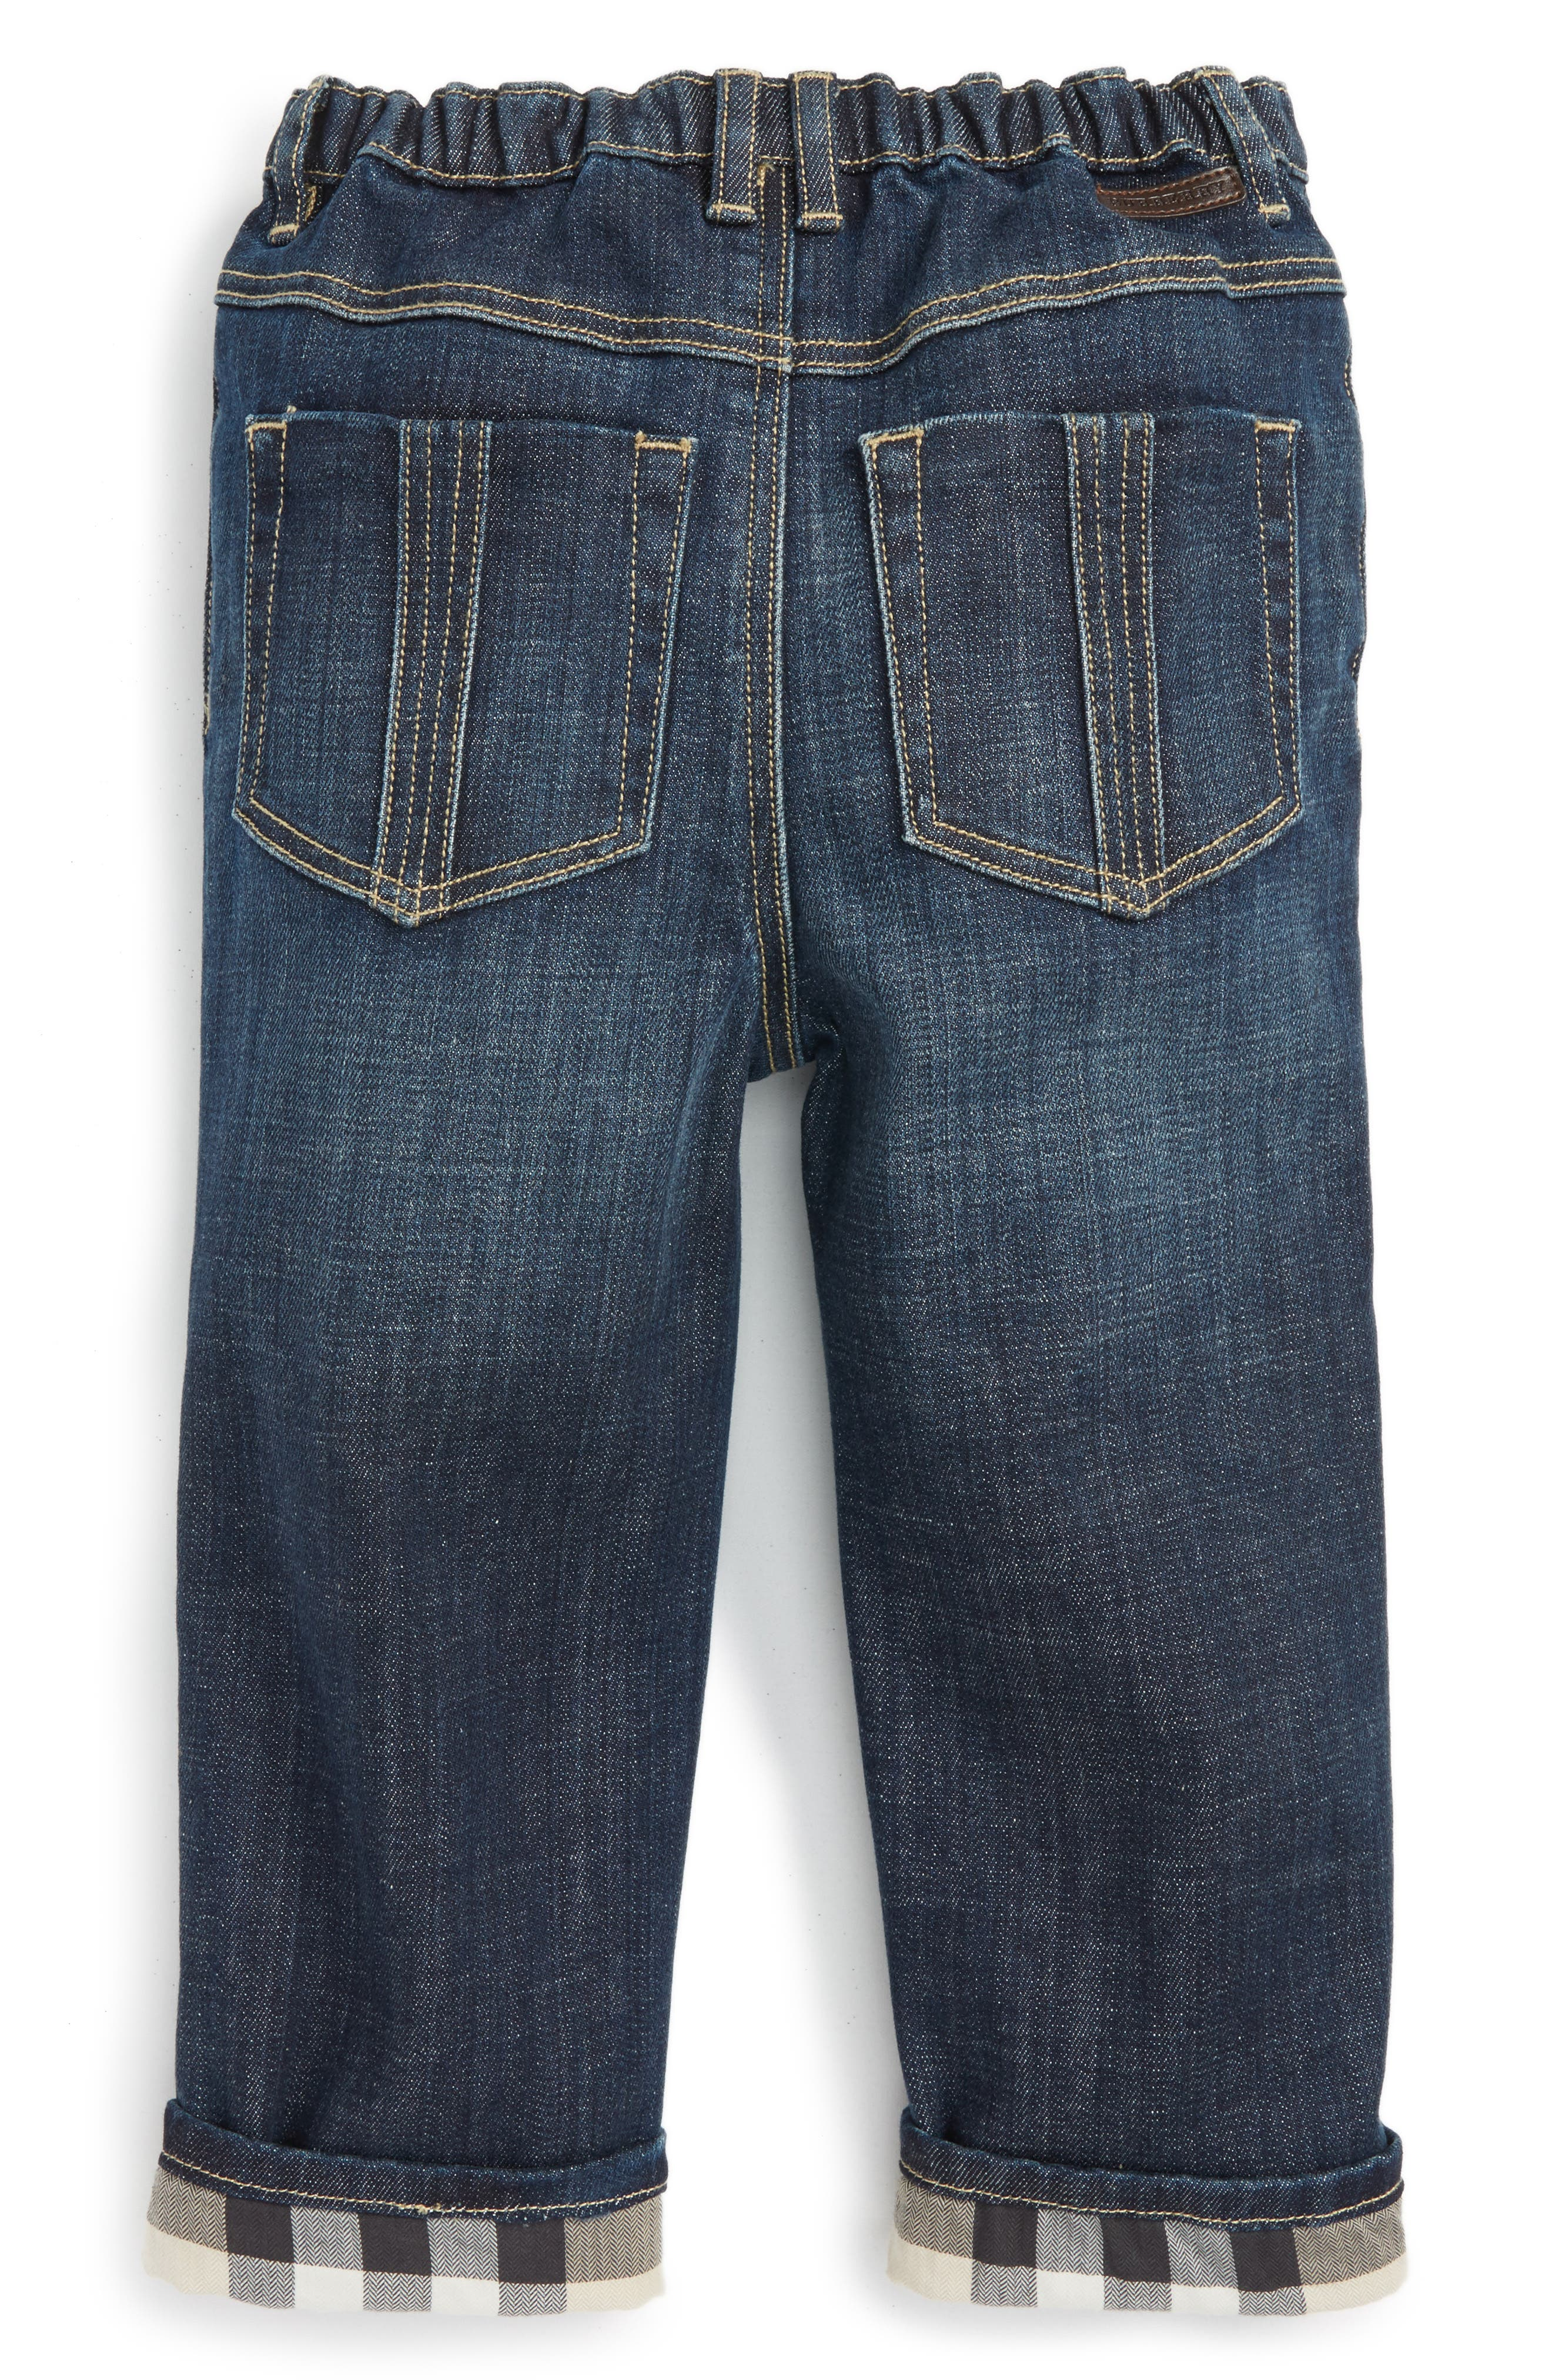 Pierre Check Lined Jeans,                             Main thumbnail 1, color,                             400